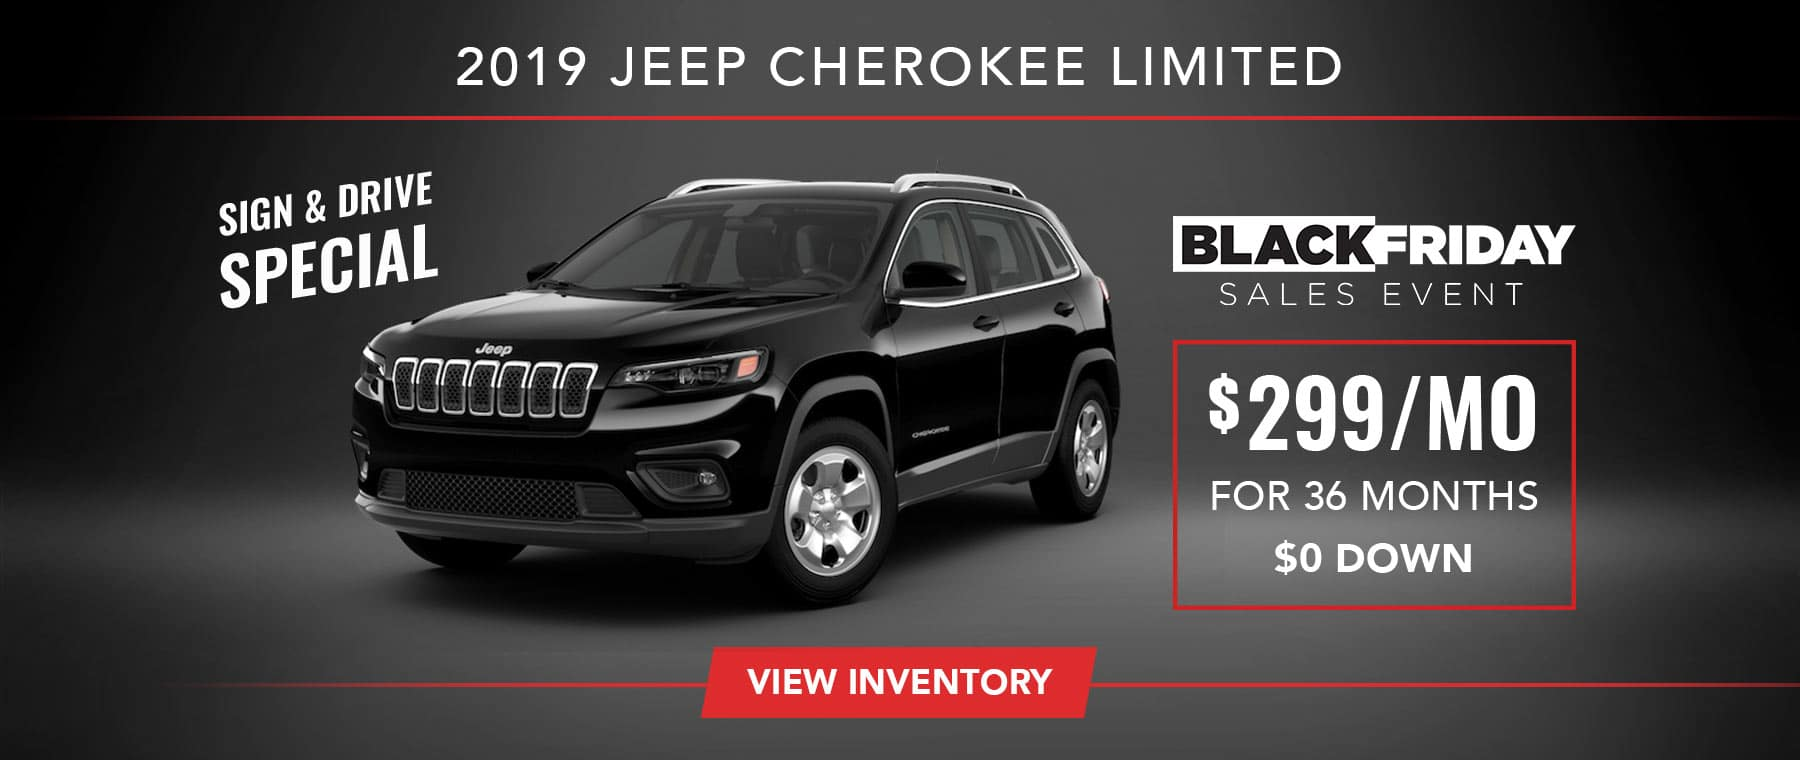 2019 Jeep Cherokee Sign and Drive Special